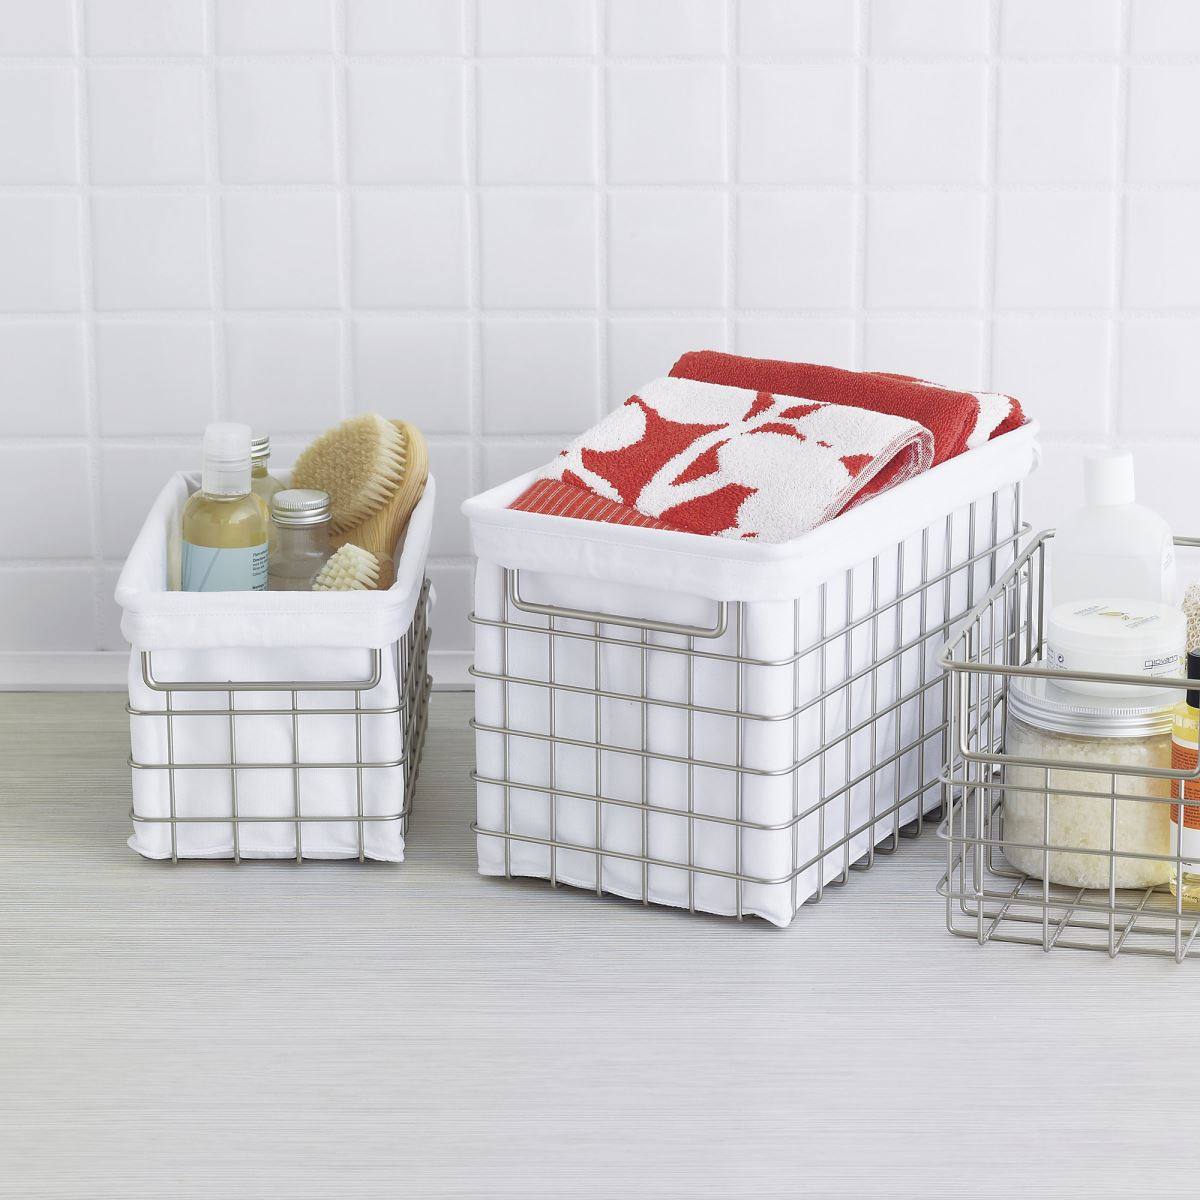 Storage baskets with liners